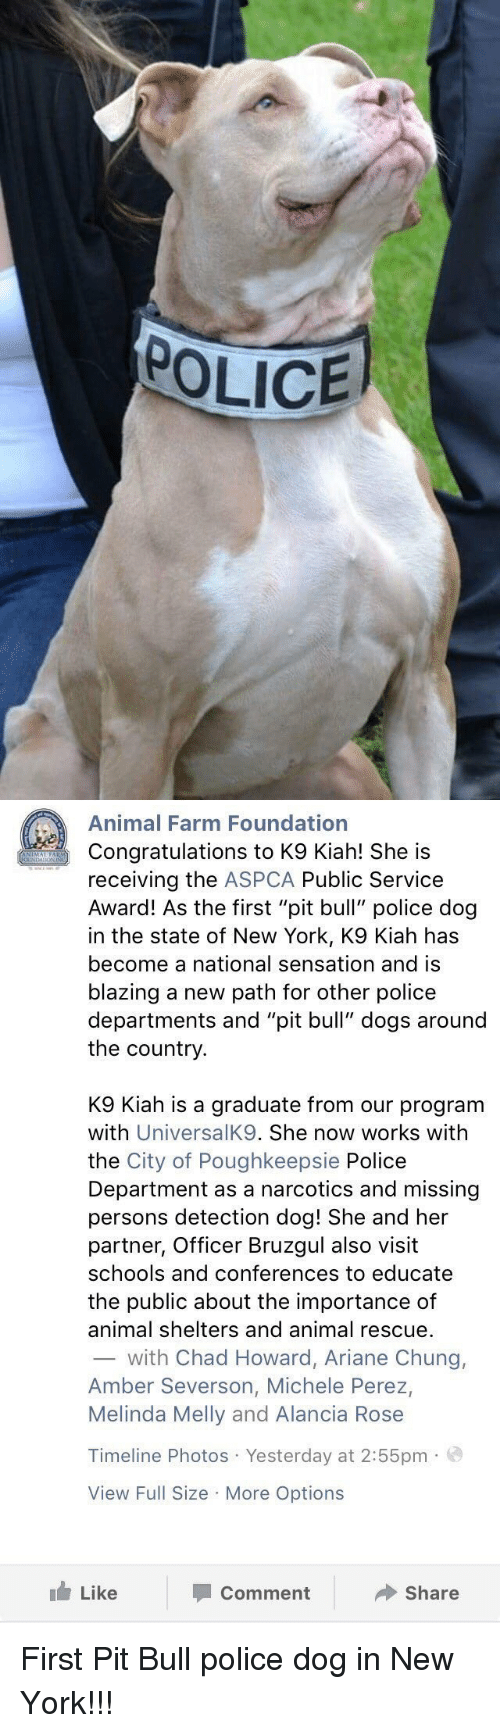 "Missing Person: POLICE   Animal Farm Foundation  Congratulations to K9 Kiah! She is  receiving the  ASPCA Public Service  Award! As the first ""pit bull"" police dog  in the state of New York, K9 Kiah has  become a national sensation and is  blazing a new path for other police  departments and ""pit bull"" dogs around  the country  K9 Kiah is a graduate from our program  with  UniversalK9. She now works with  the City of Poughkeepsie Police  Department as a narcotics and missing  persons detection dog! She and her  partner, Officer Bruzgul also visit  schools and conferences to educate  the public about the importance of  animal shelters and animal rescue.  with Chad Howard, Ariane Chung,  Amber Severson, Michele Perez,  Melinda Melly and Alancia Rose  Timeline Photos Yesterday at 2:55pm.  View Full Size More Options  Like  Share  Comment First Pit Bull police dog in New York!!!"